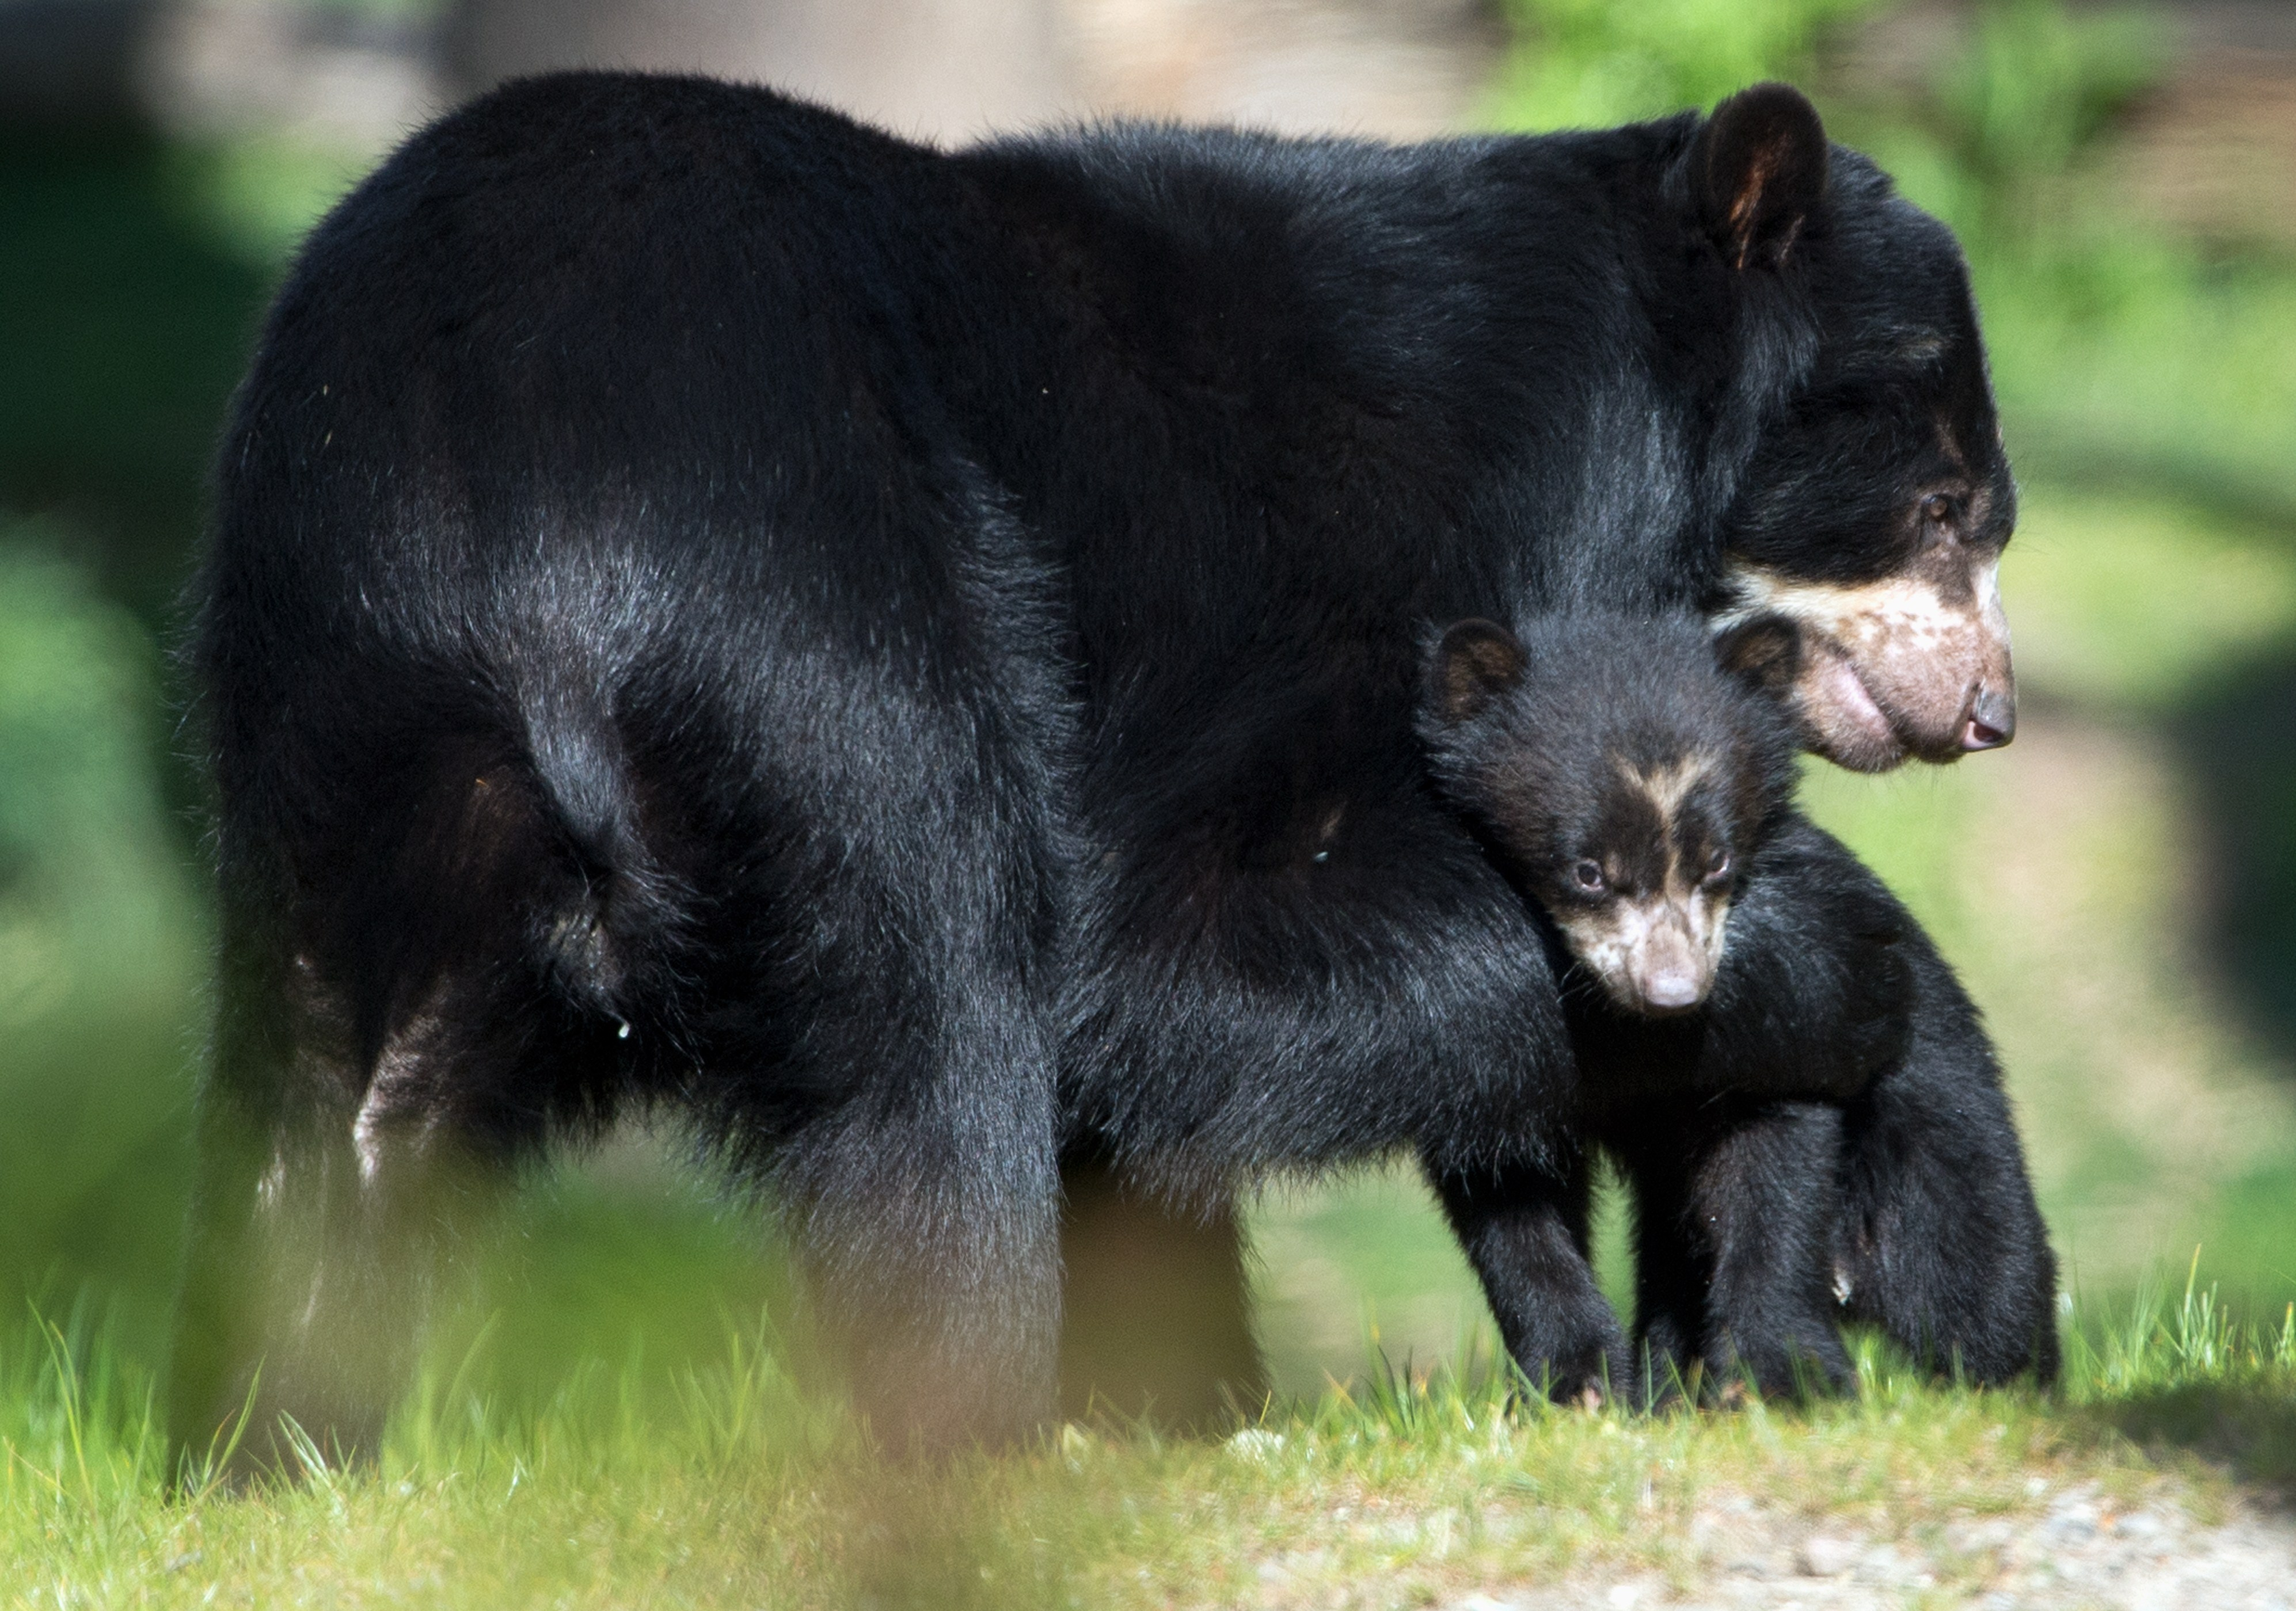 Spectacled bear mother Cashu stands next to one of her babies on April 17, 2014 at the zoo in Frankfurt am Main, Germany.